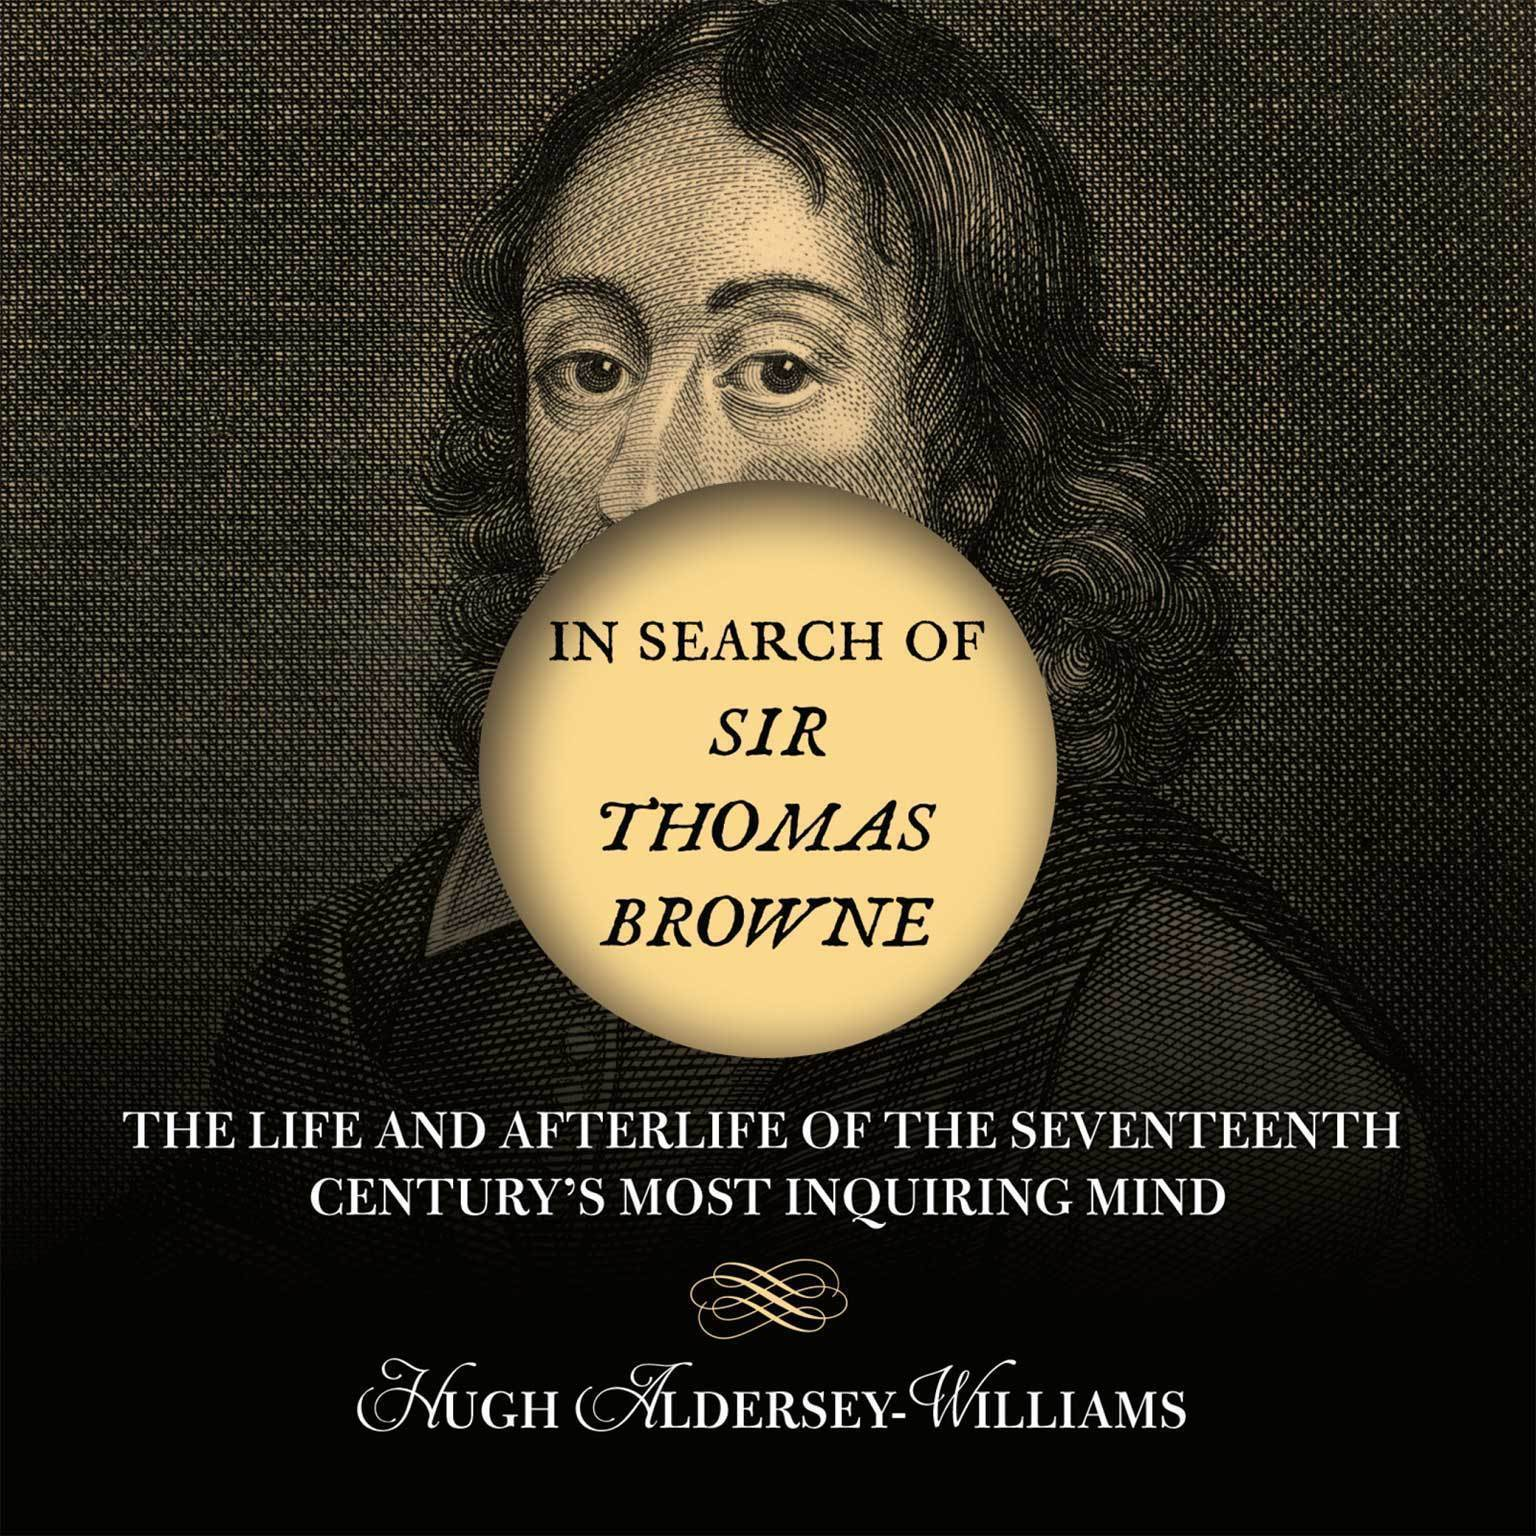 Printable In Search of Sir Thomas Browne: The Life and Afterlife of the Seventeenth Century's Most Inquiring Mind Audiobook Cover Art